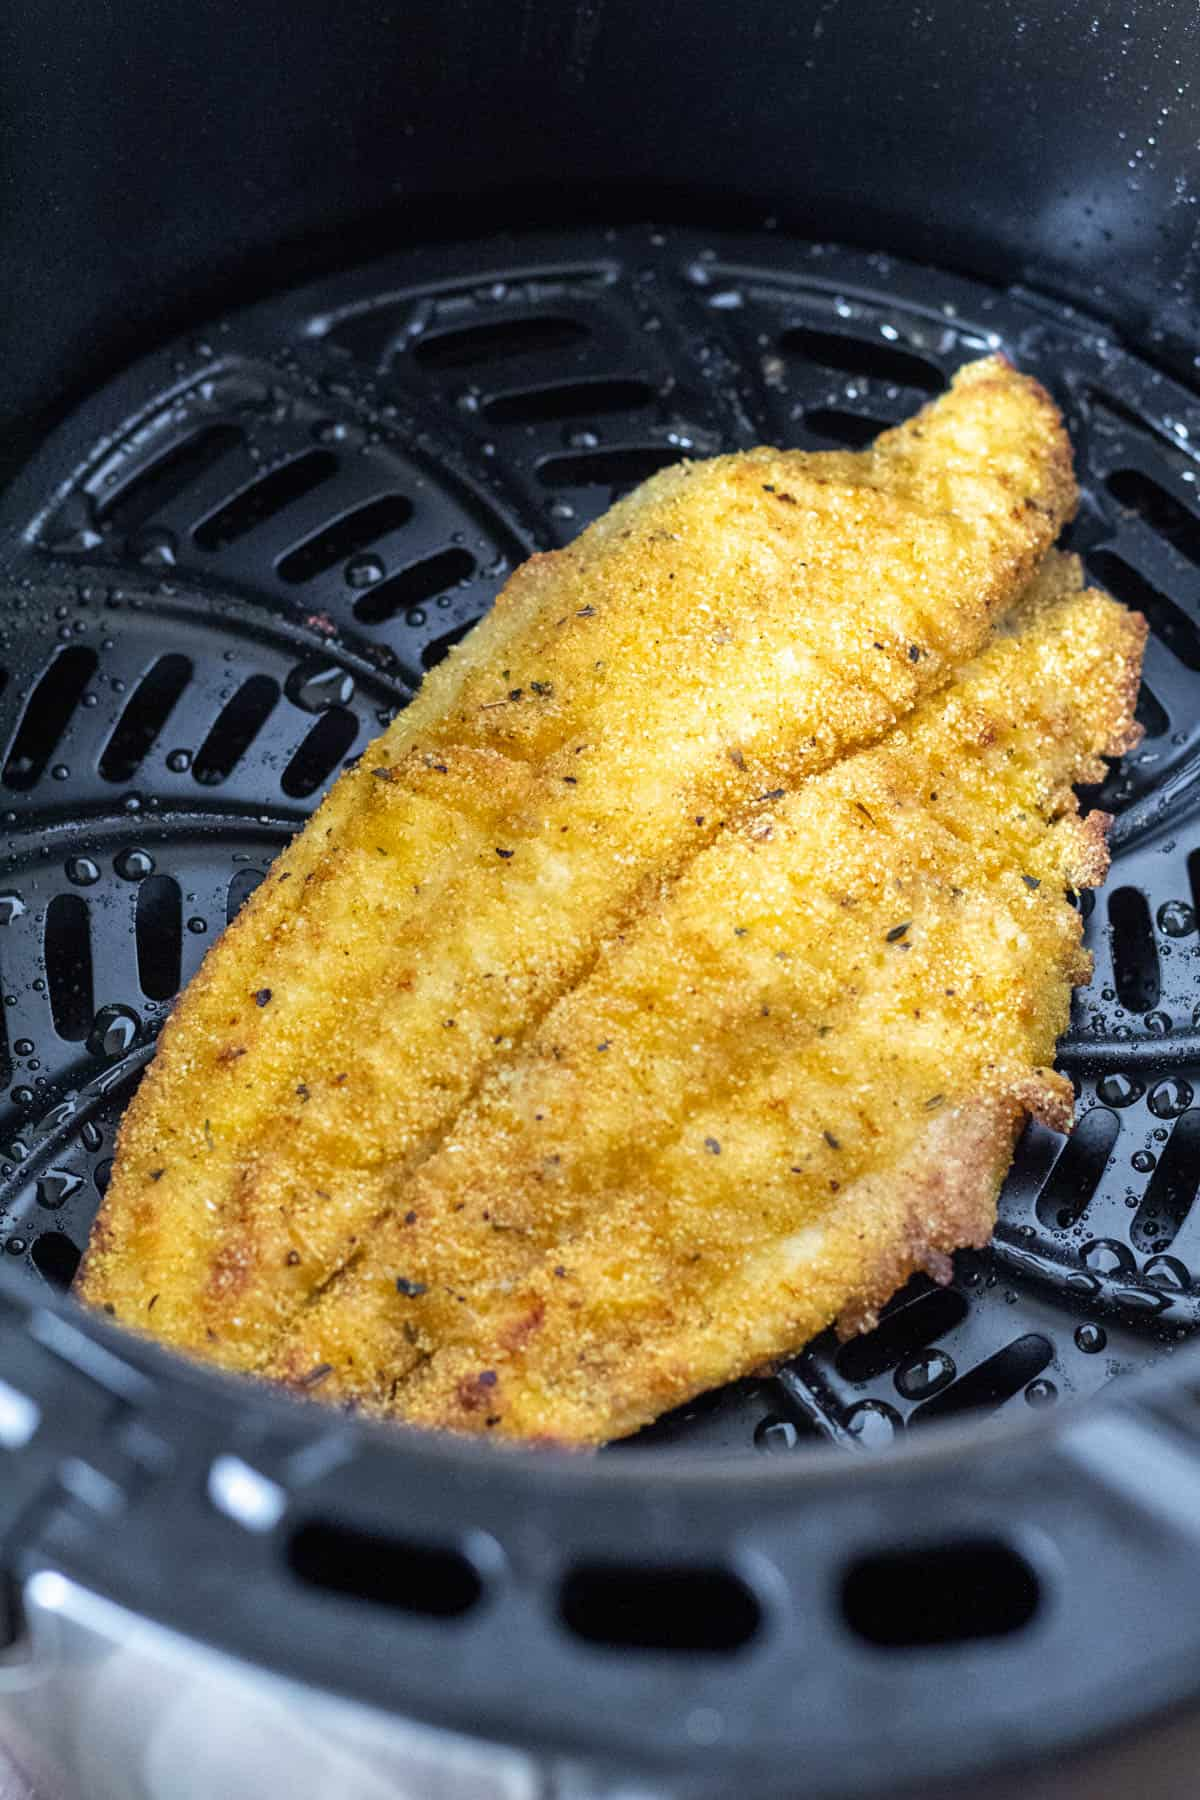 Catfish fillet in air fryer basket, browned on one side and ready to flip.